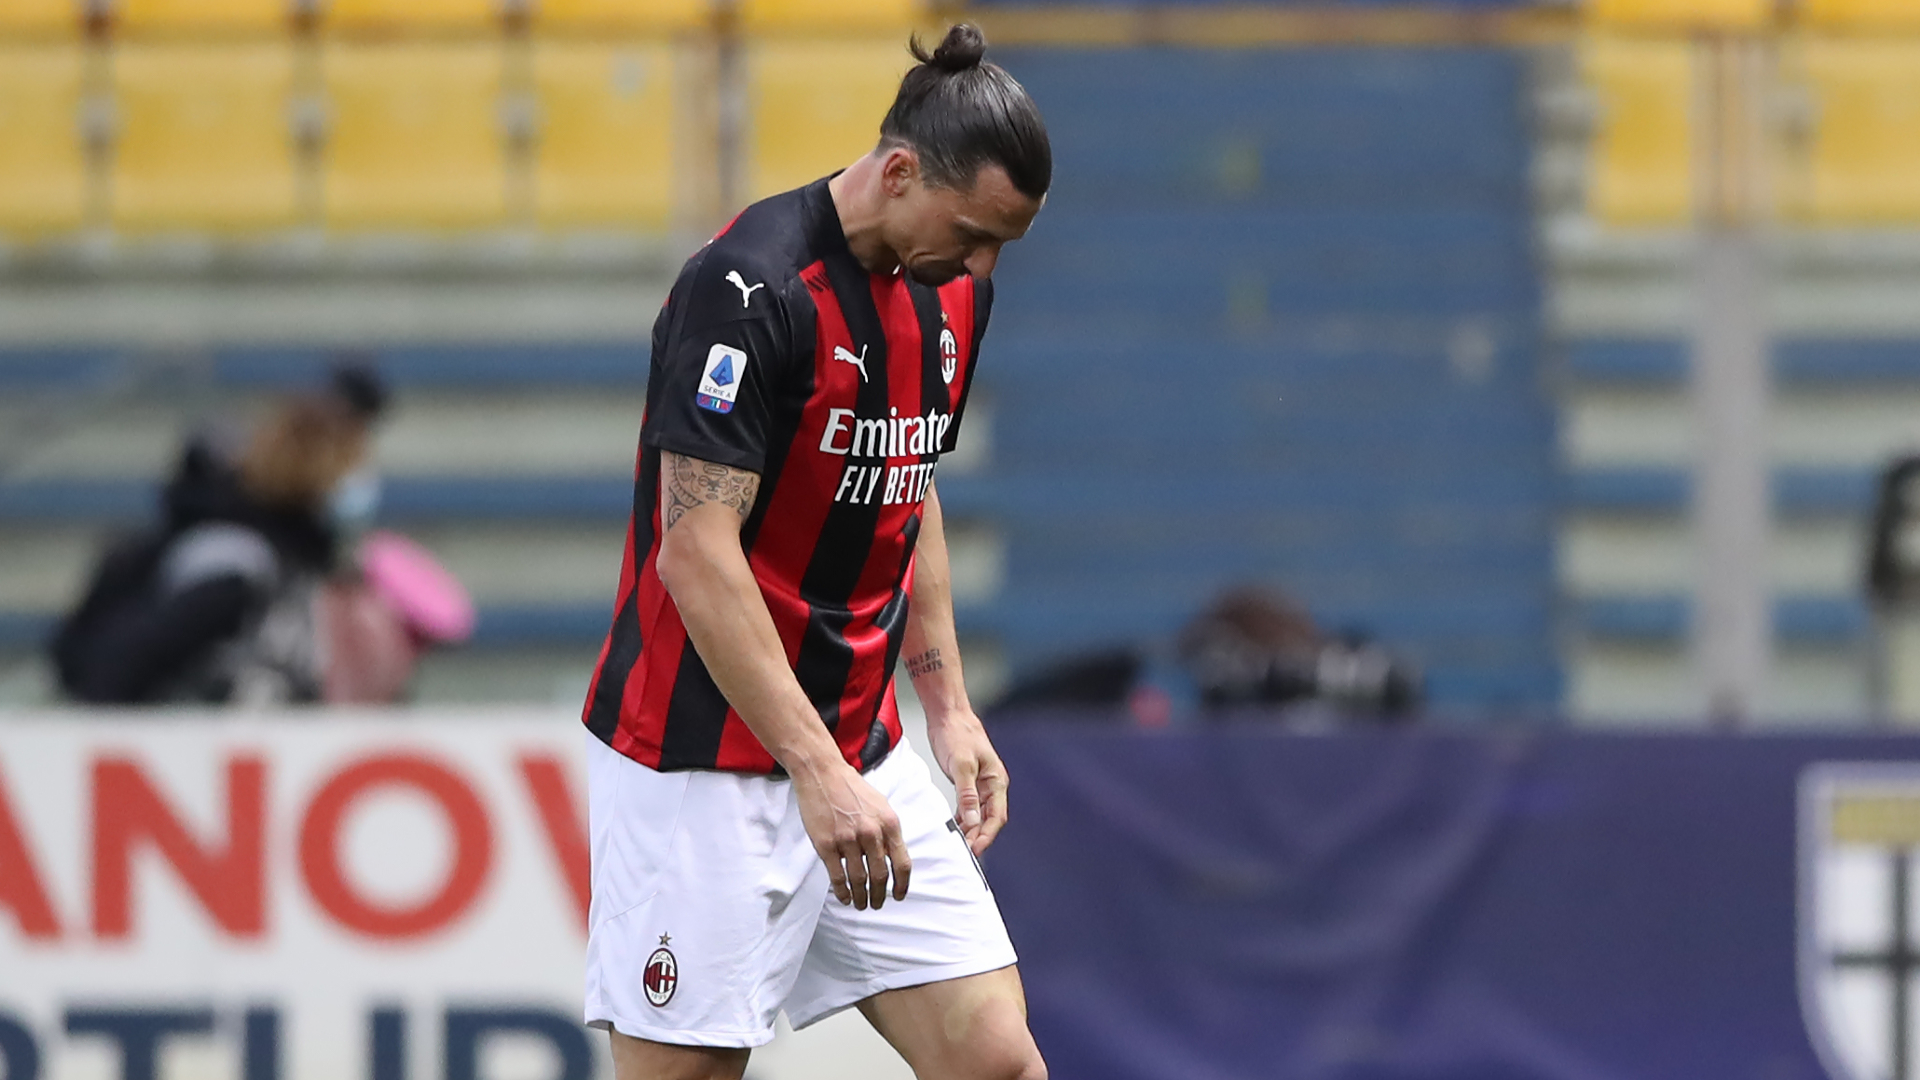 Parma 1-3 Milan: Rossoneri made to sweat after Ibrahimovic sent off for dissent